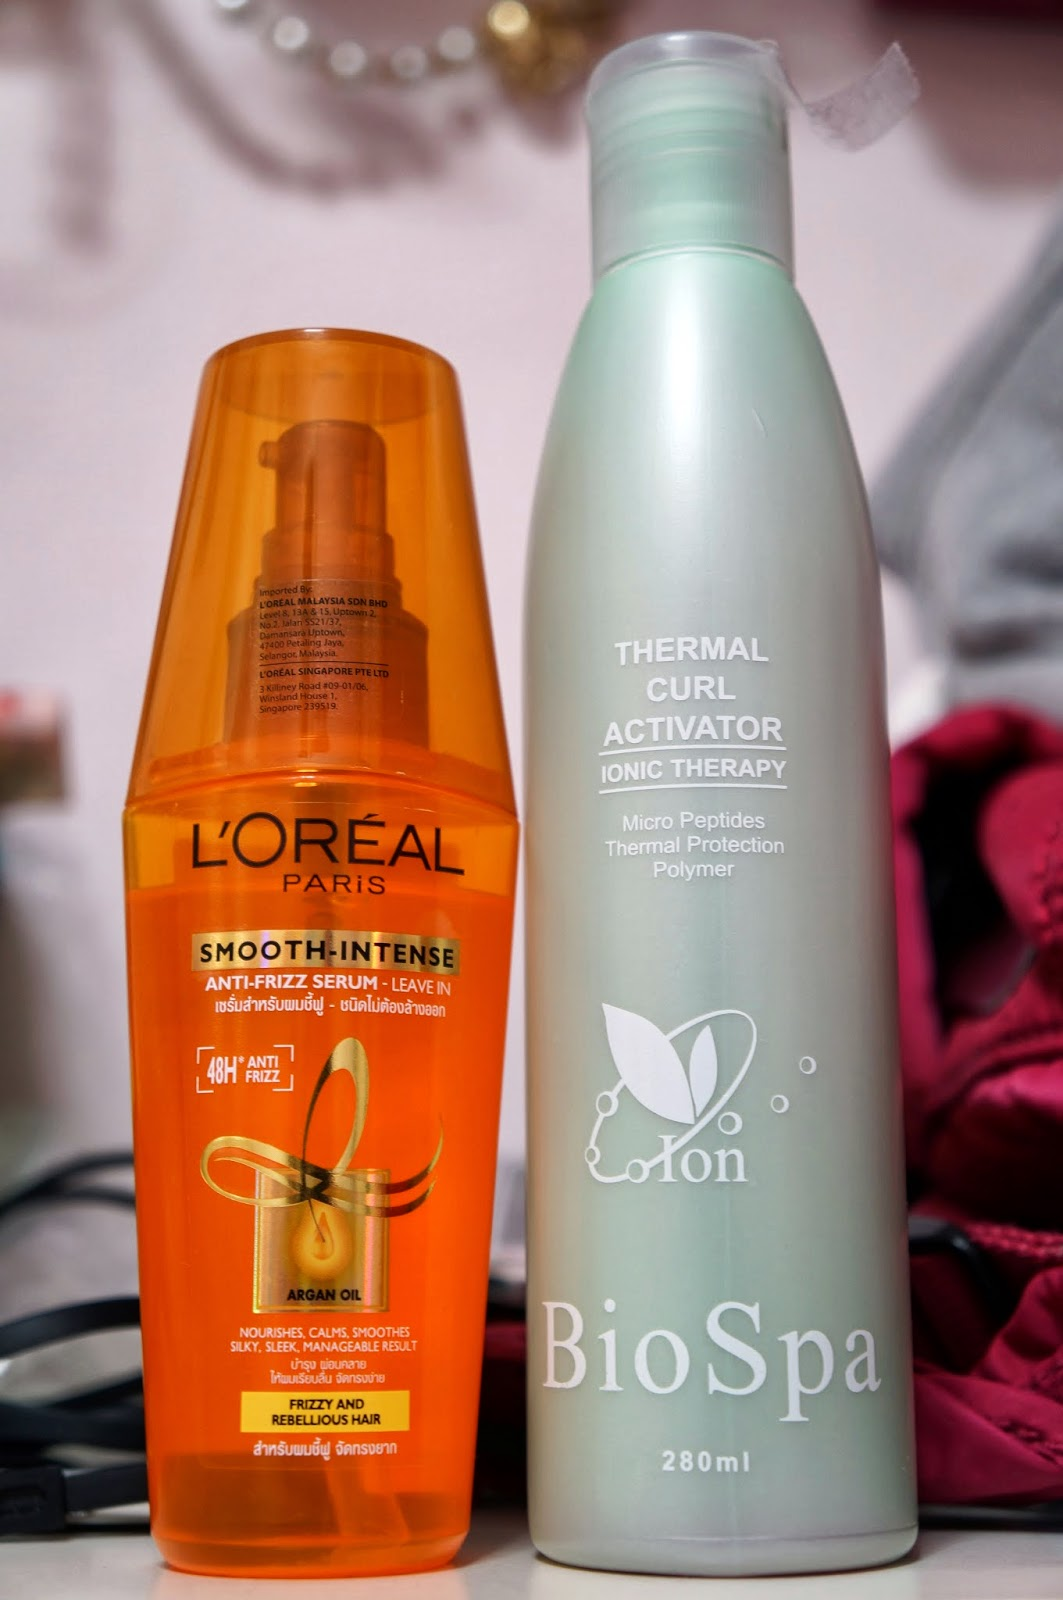 Straight perm hair care - Stylist Recommend Me To Buy This Sculpturing Gel Right To Apply On My Hair Every Time After Washing To Maintain The Curl Was Also Told To Mix With Any